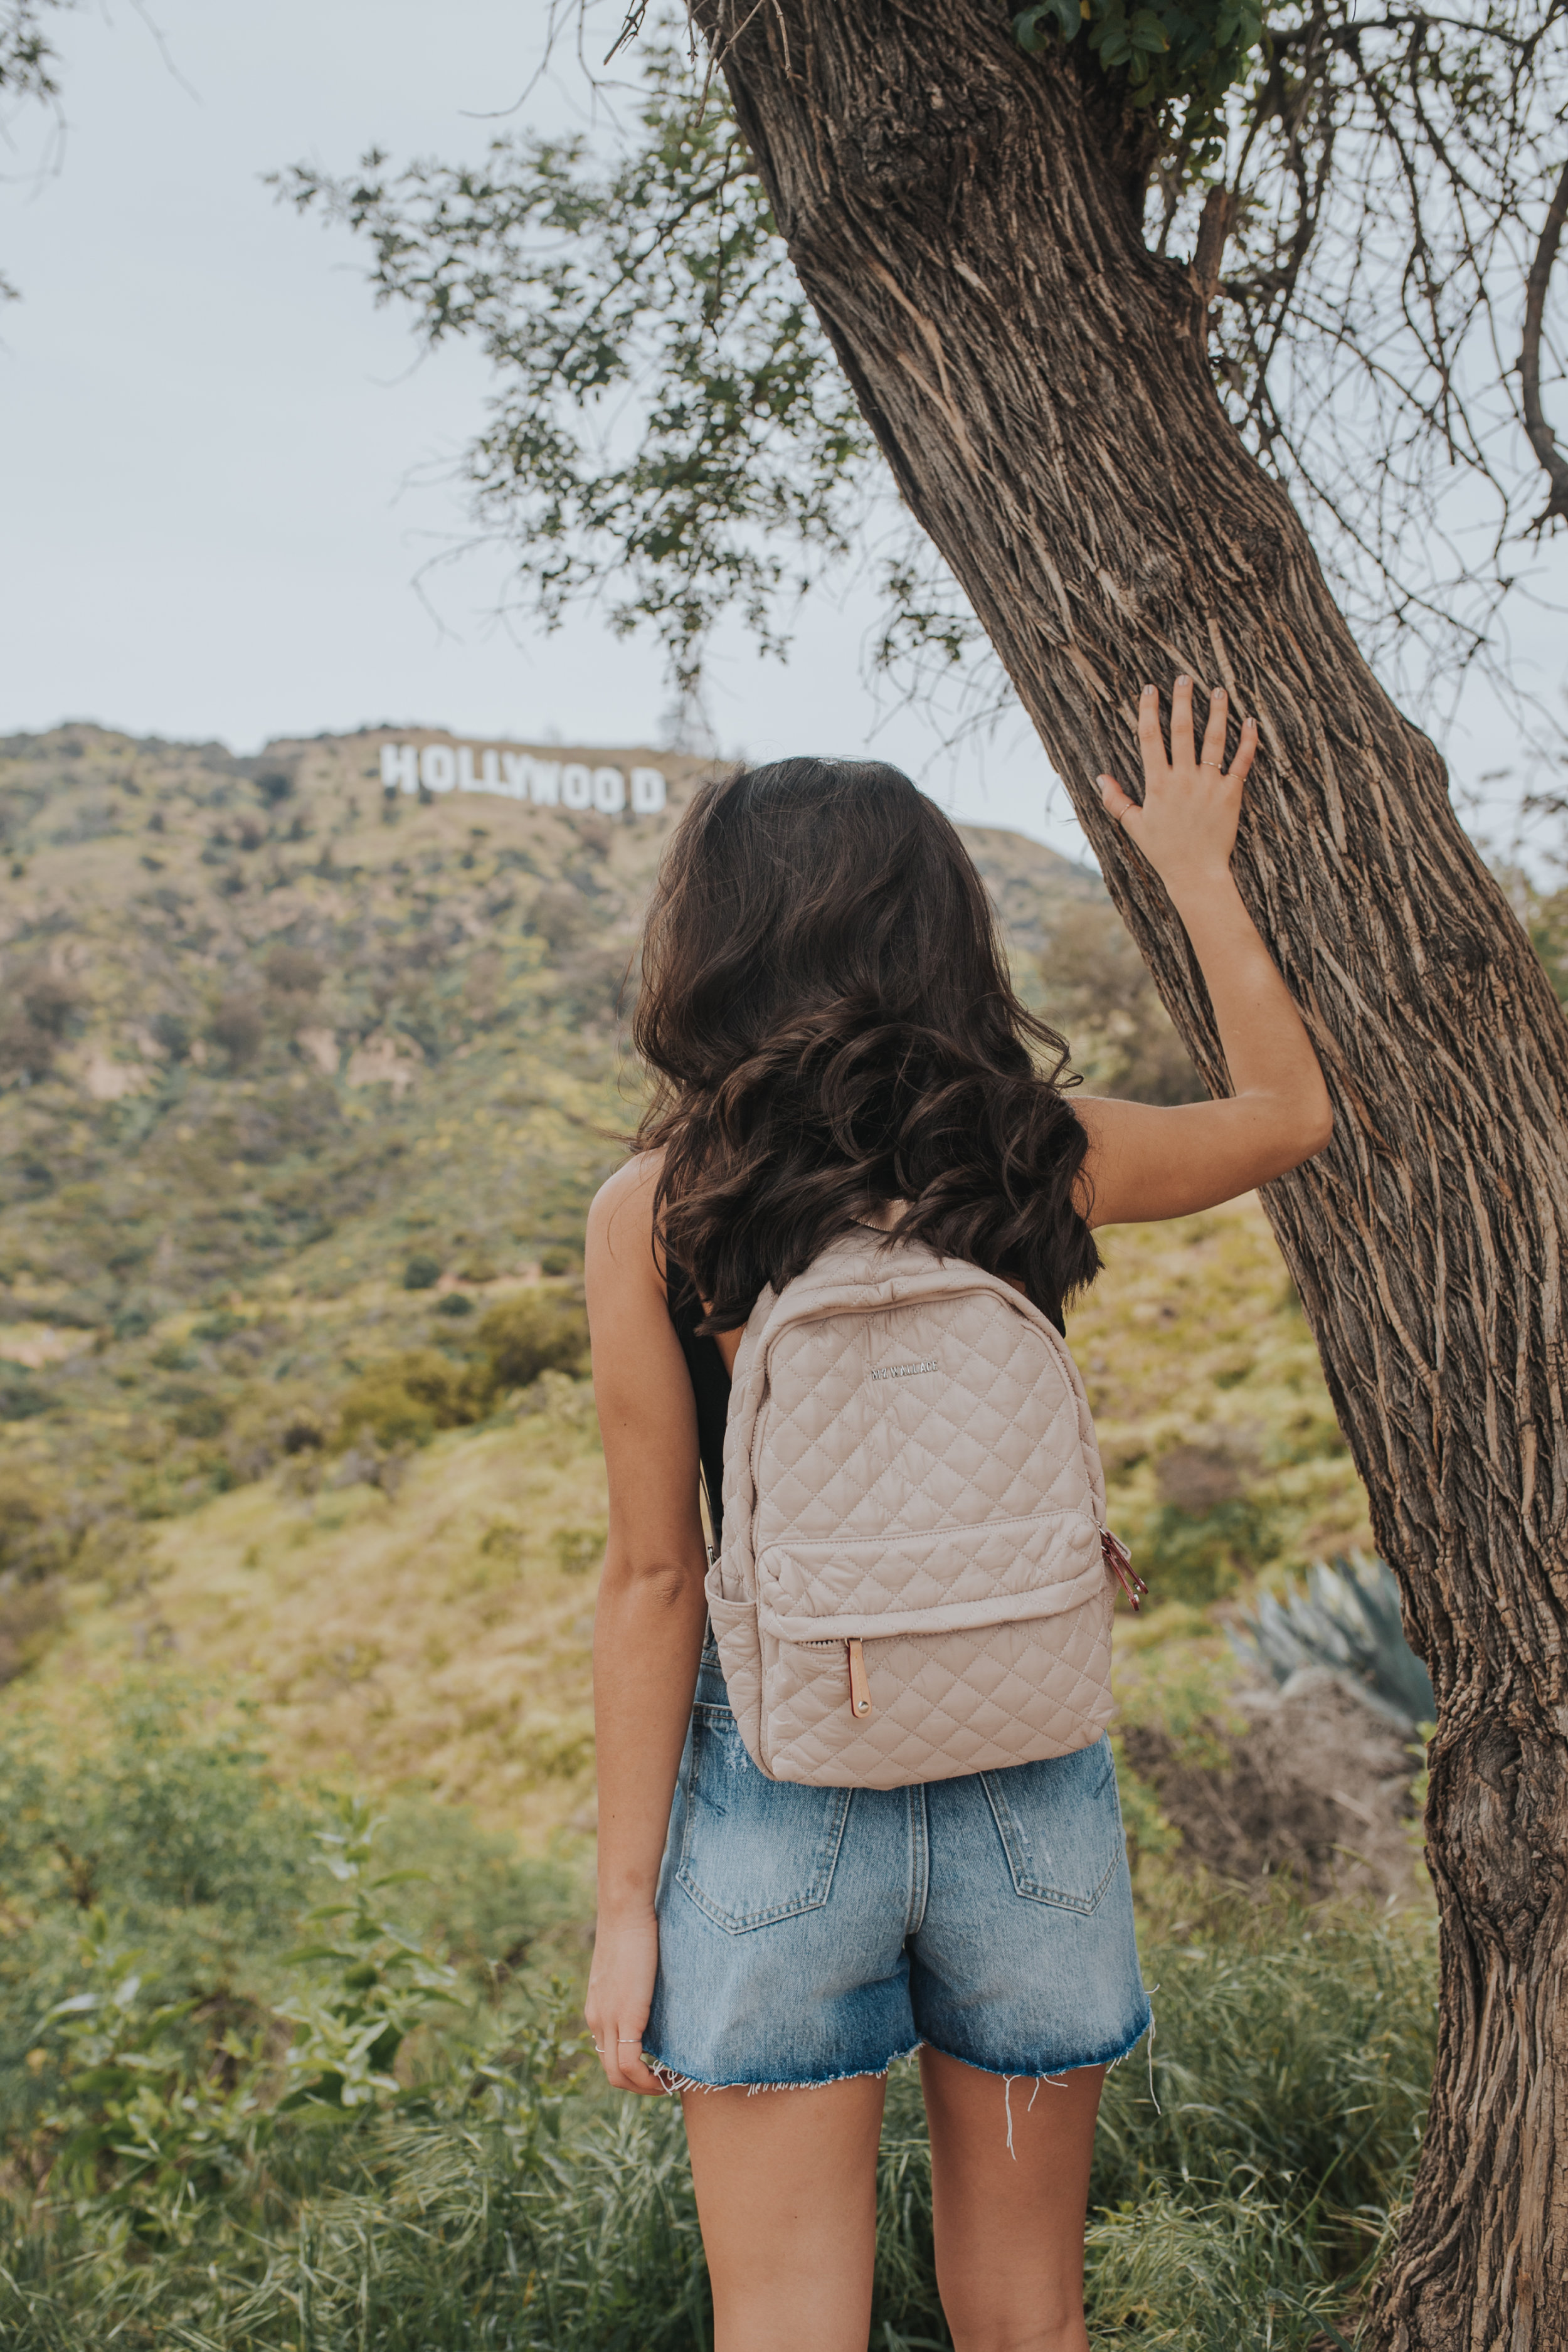 Caila Quinn The Bachelor Travel Blogger Visitor's LA Guide to Los Angeles California